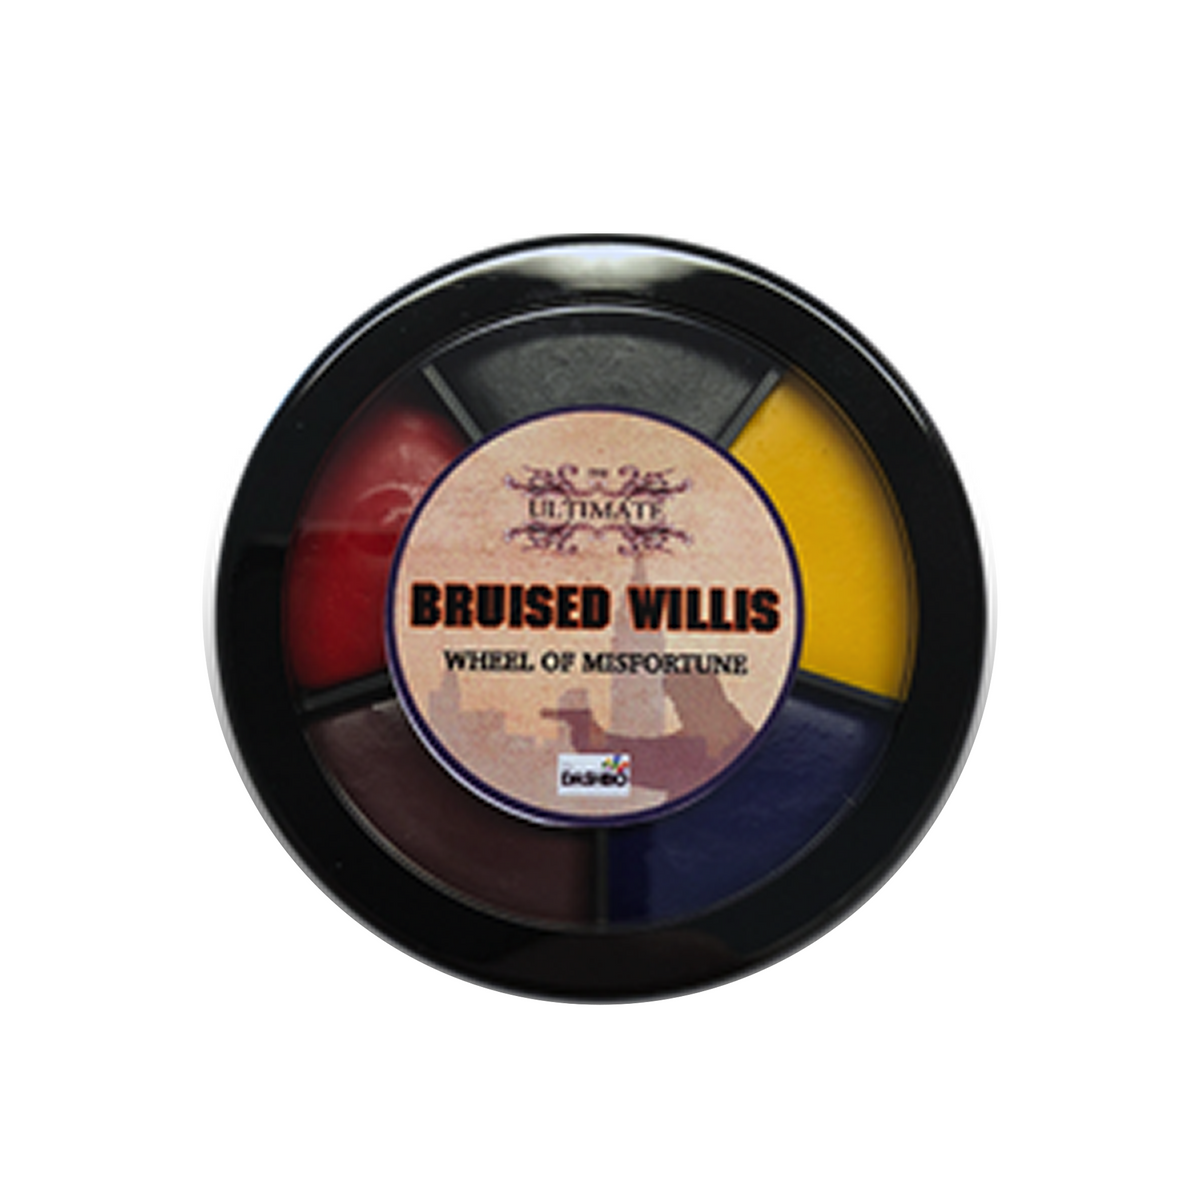 Dashbo Grease Paint Wheel - Bruised Willis